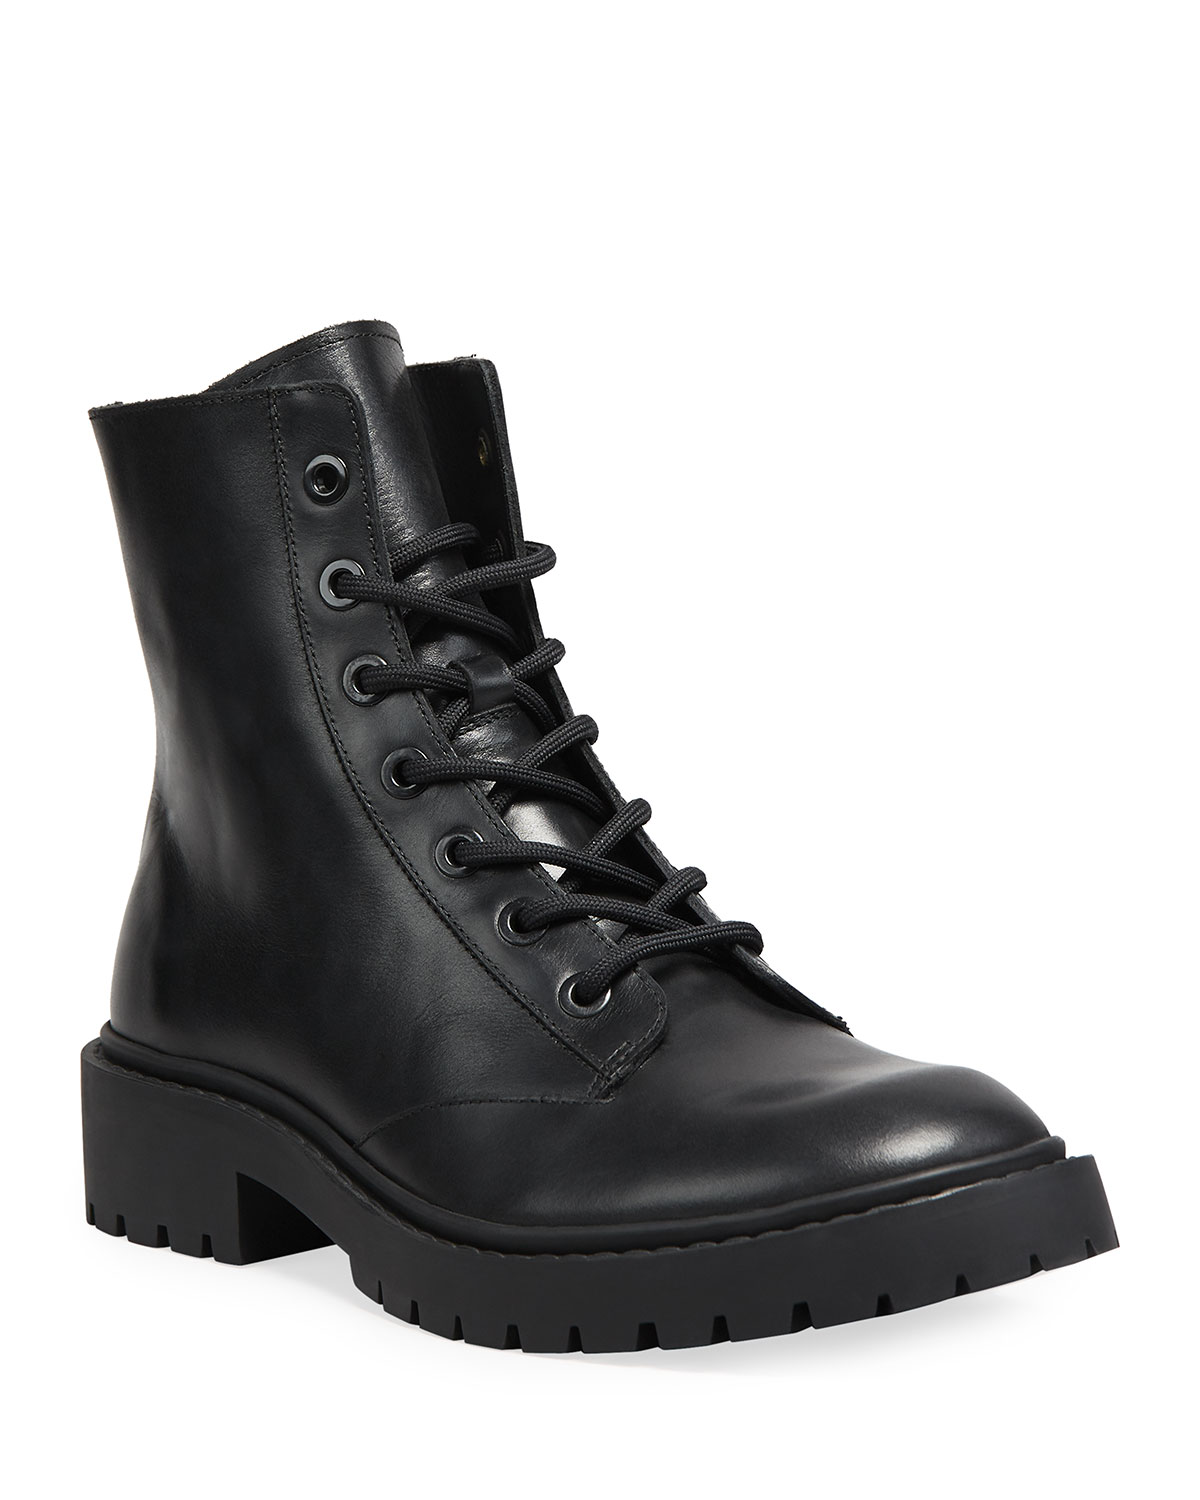 Kenzo MEN'S PIKE LEATHER LACE-UP BOOTS